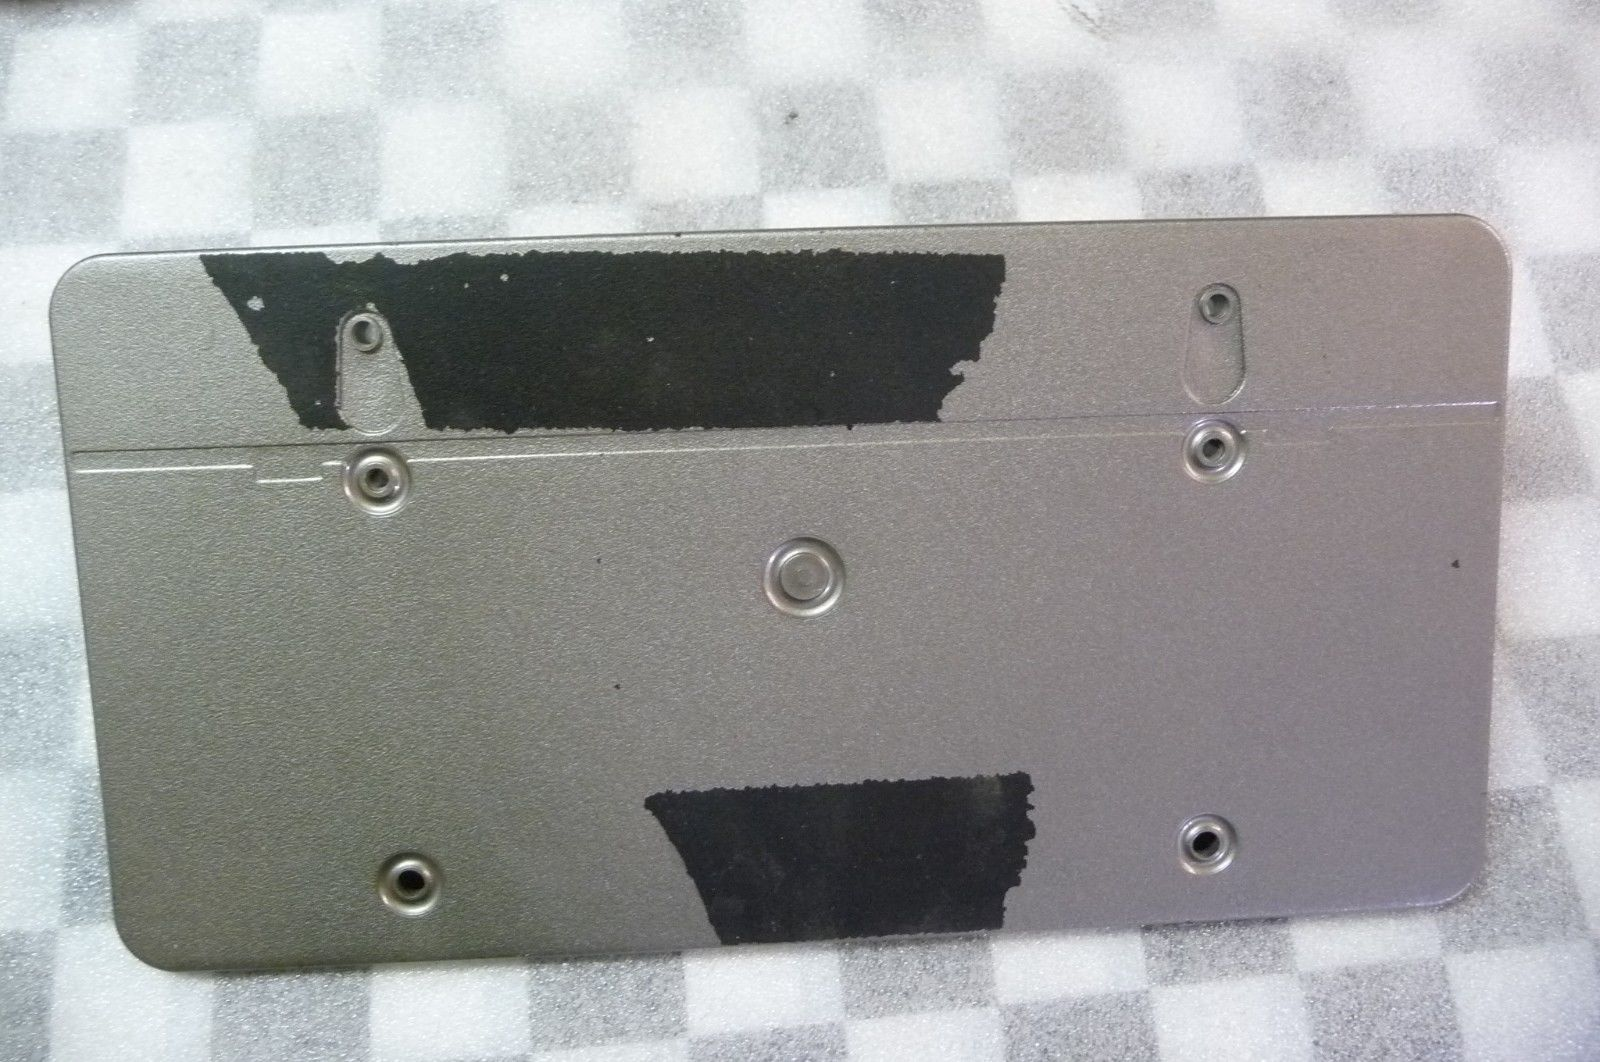 Mercedes Benz S Class Front Bumper License Plate Moulding A 2208851581 OEM OE